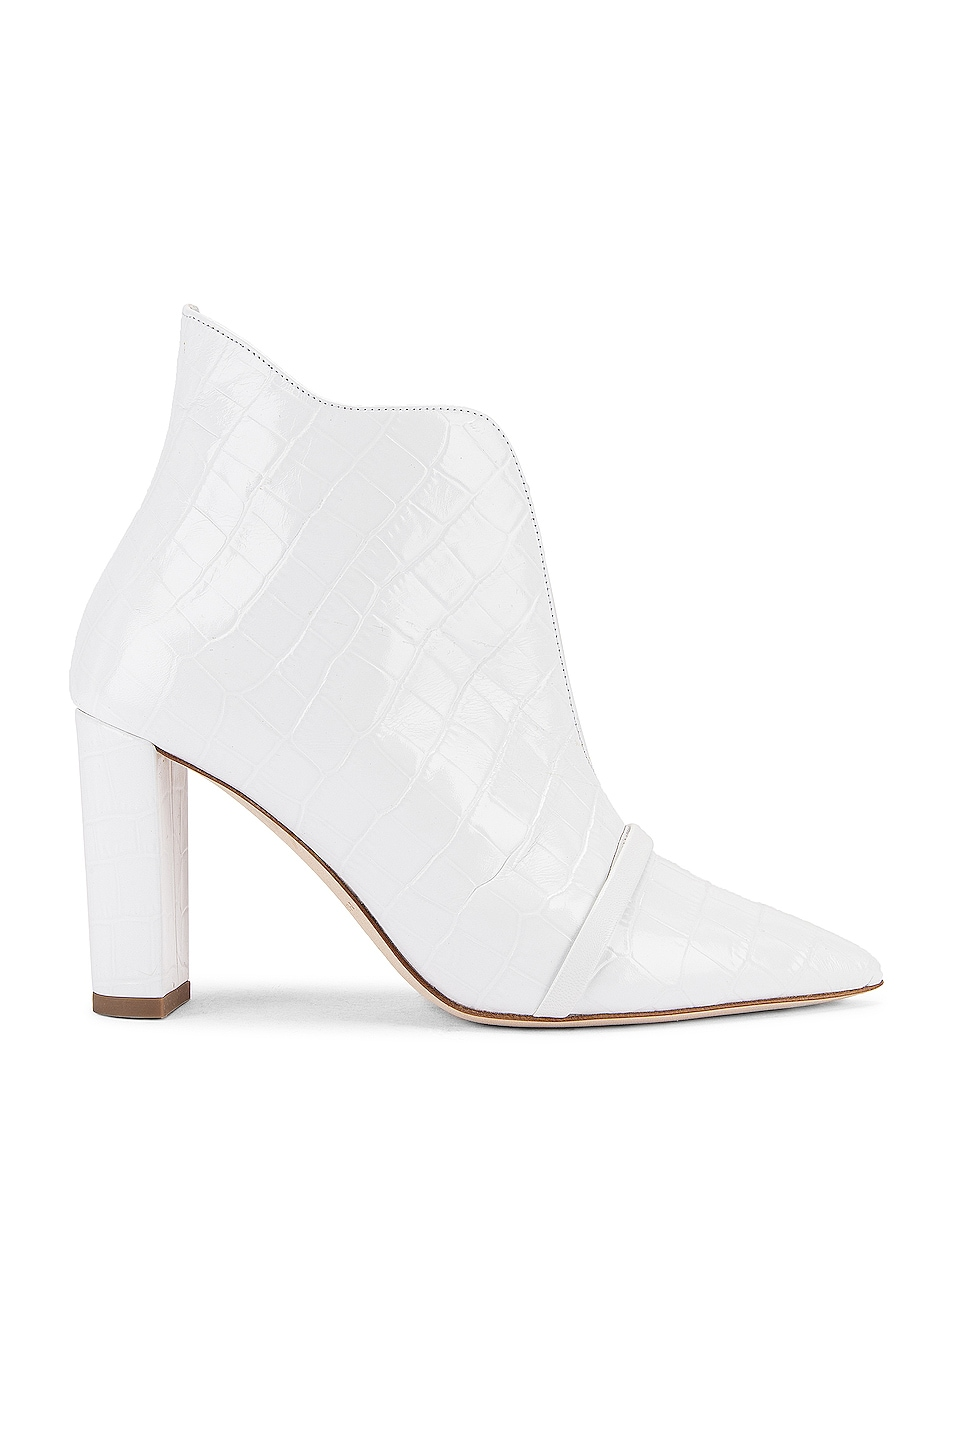 Image 1 of Malone Souliers Clara 85 Heel in White